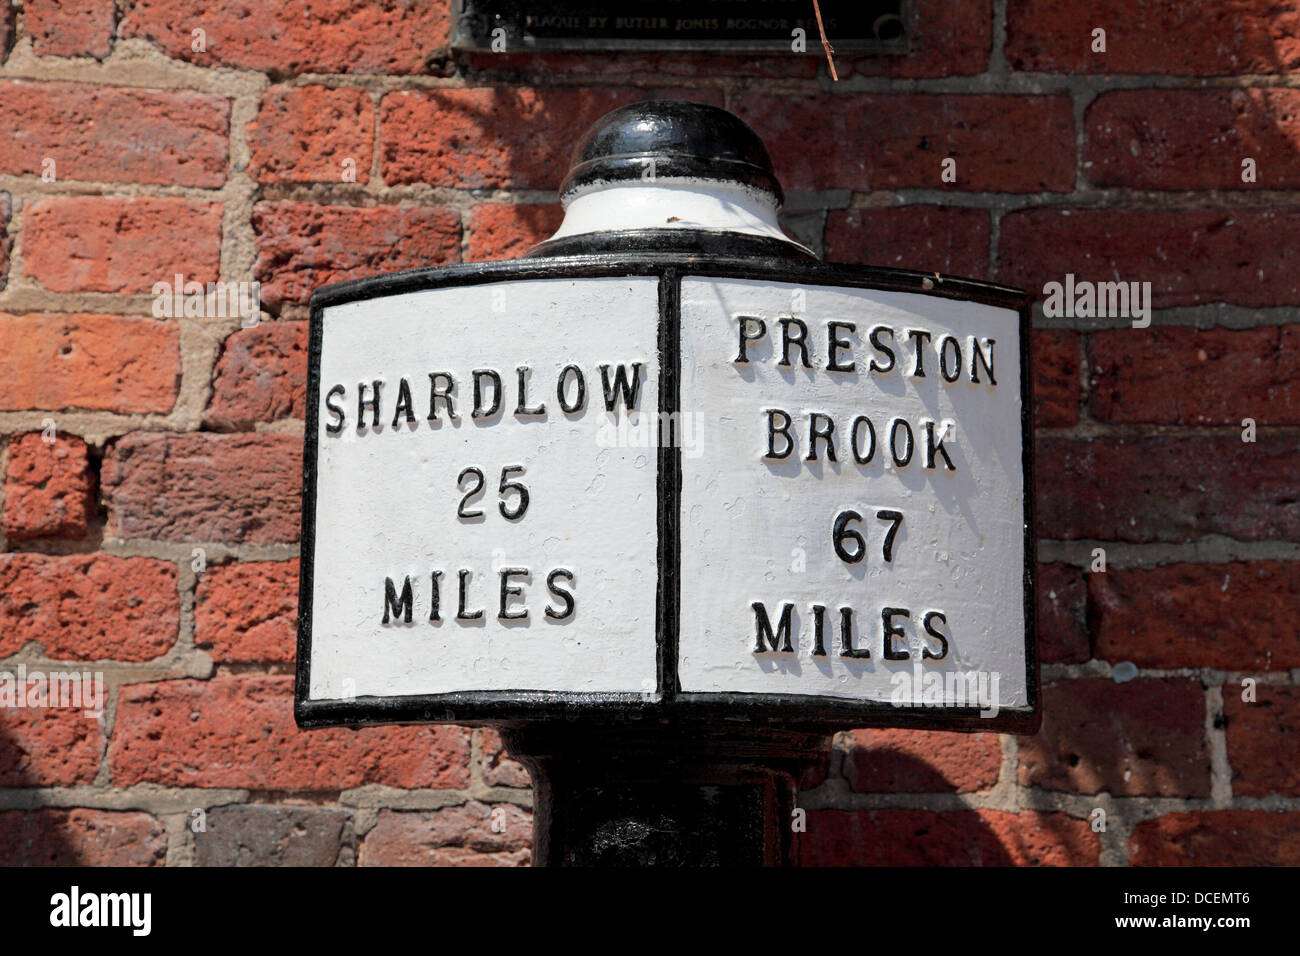 Mile post sign at Fradley Junction, Staffordshire where the Trent and Mersey Canal meets the Coventry Canal - Stock Image